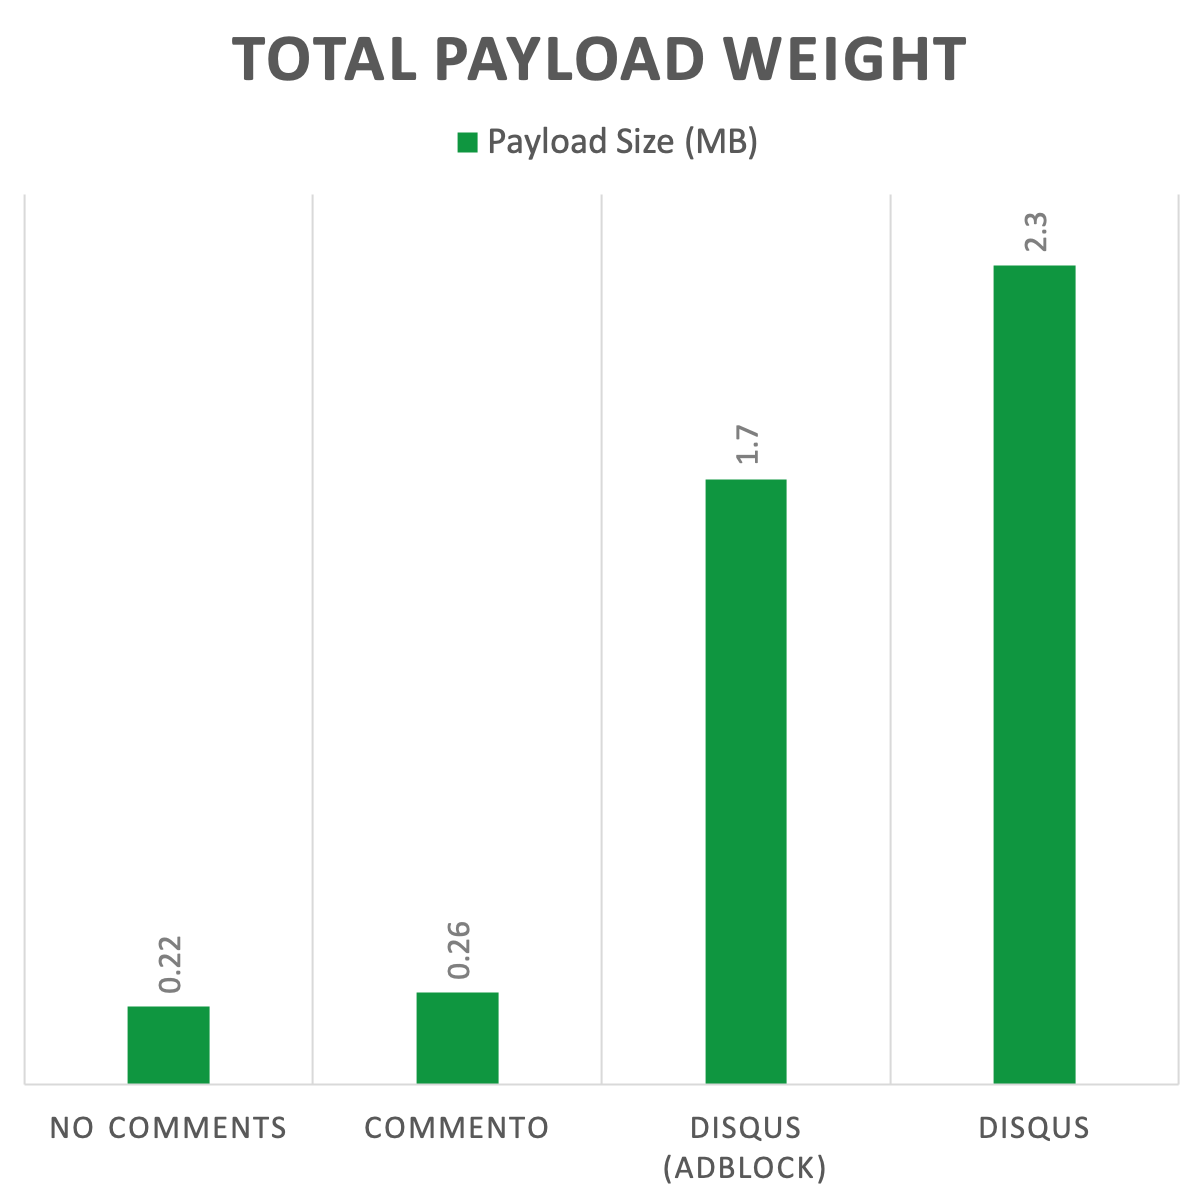 Total Payload Weight